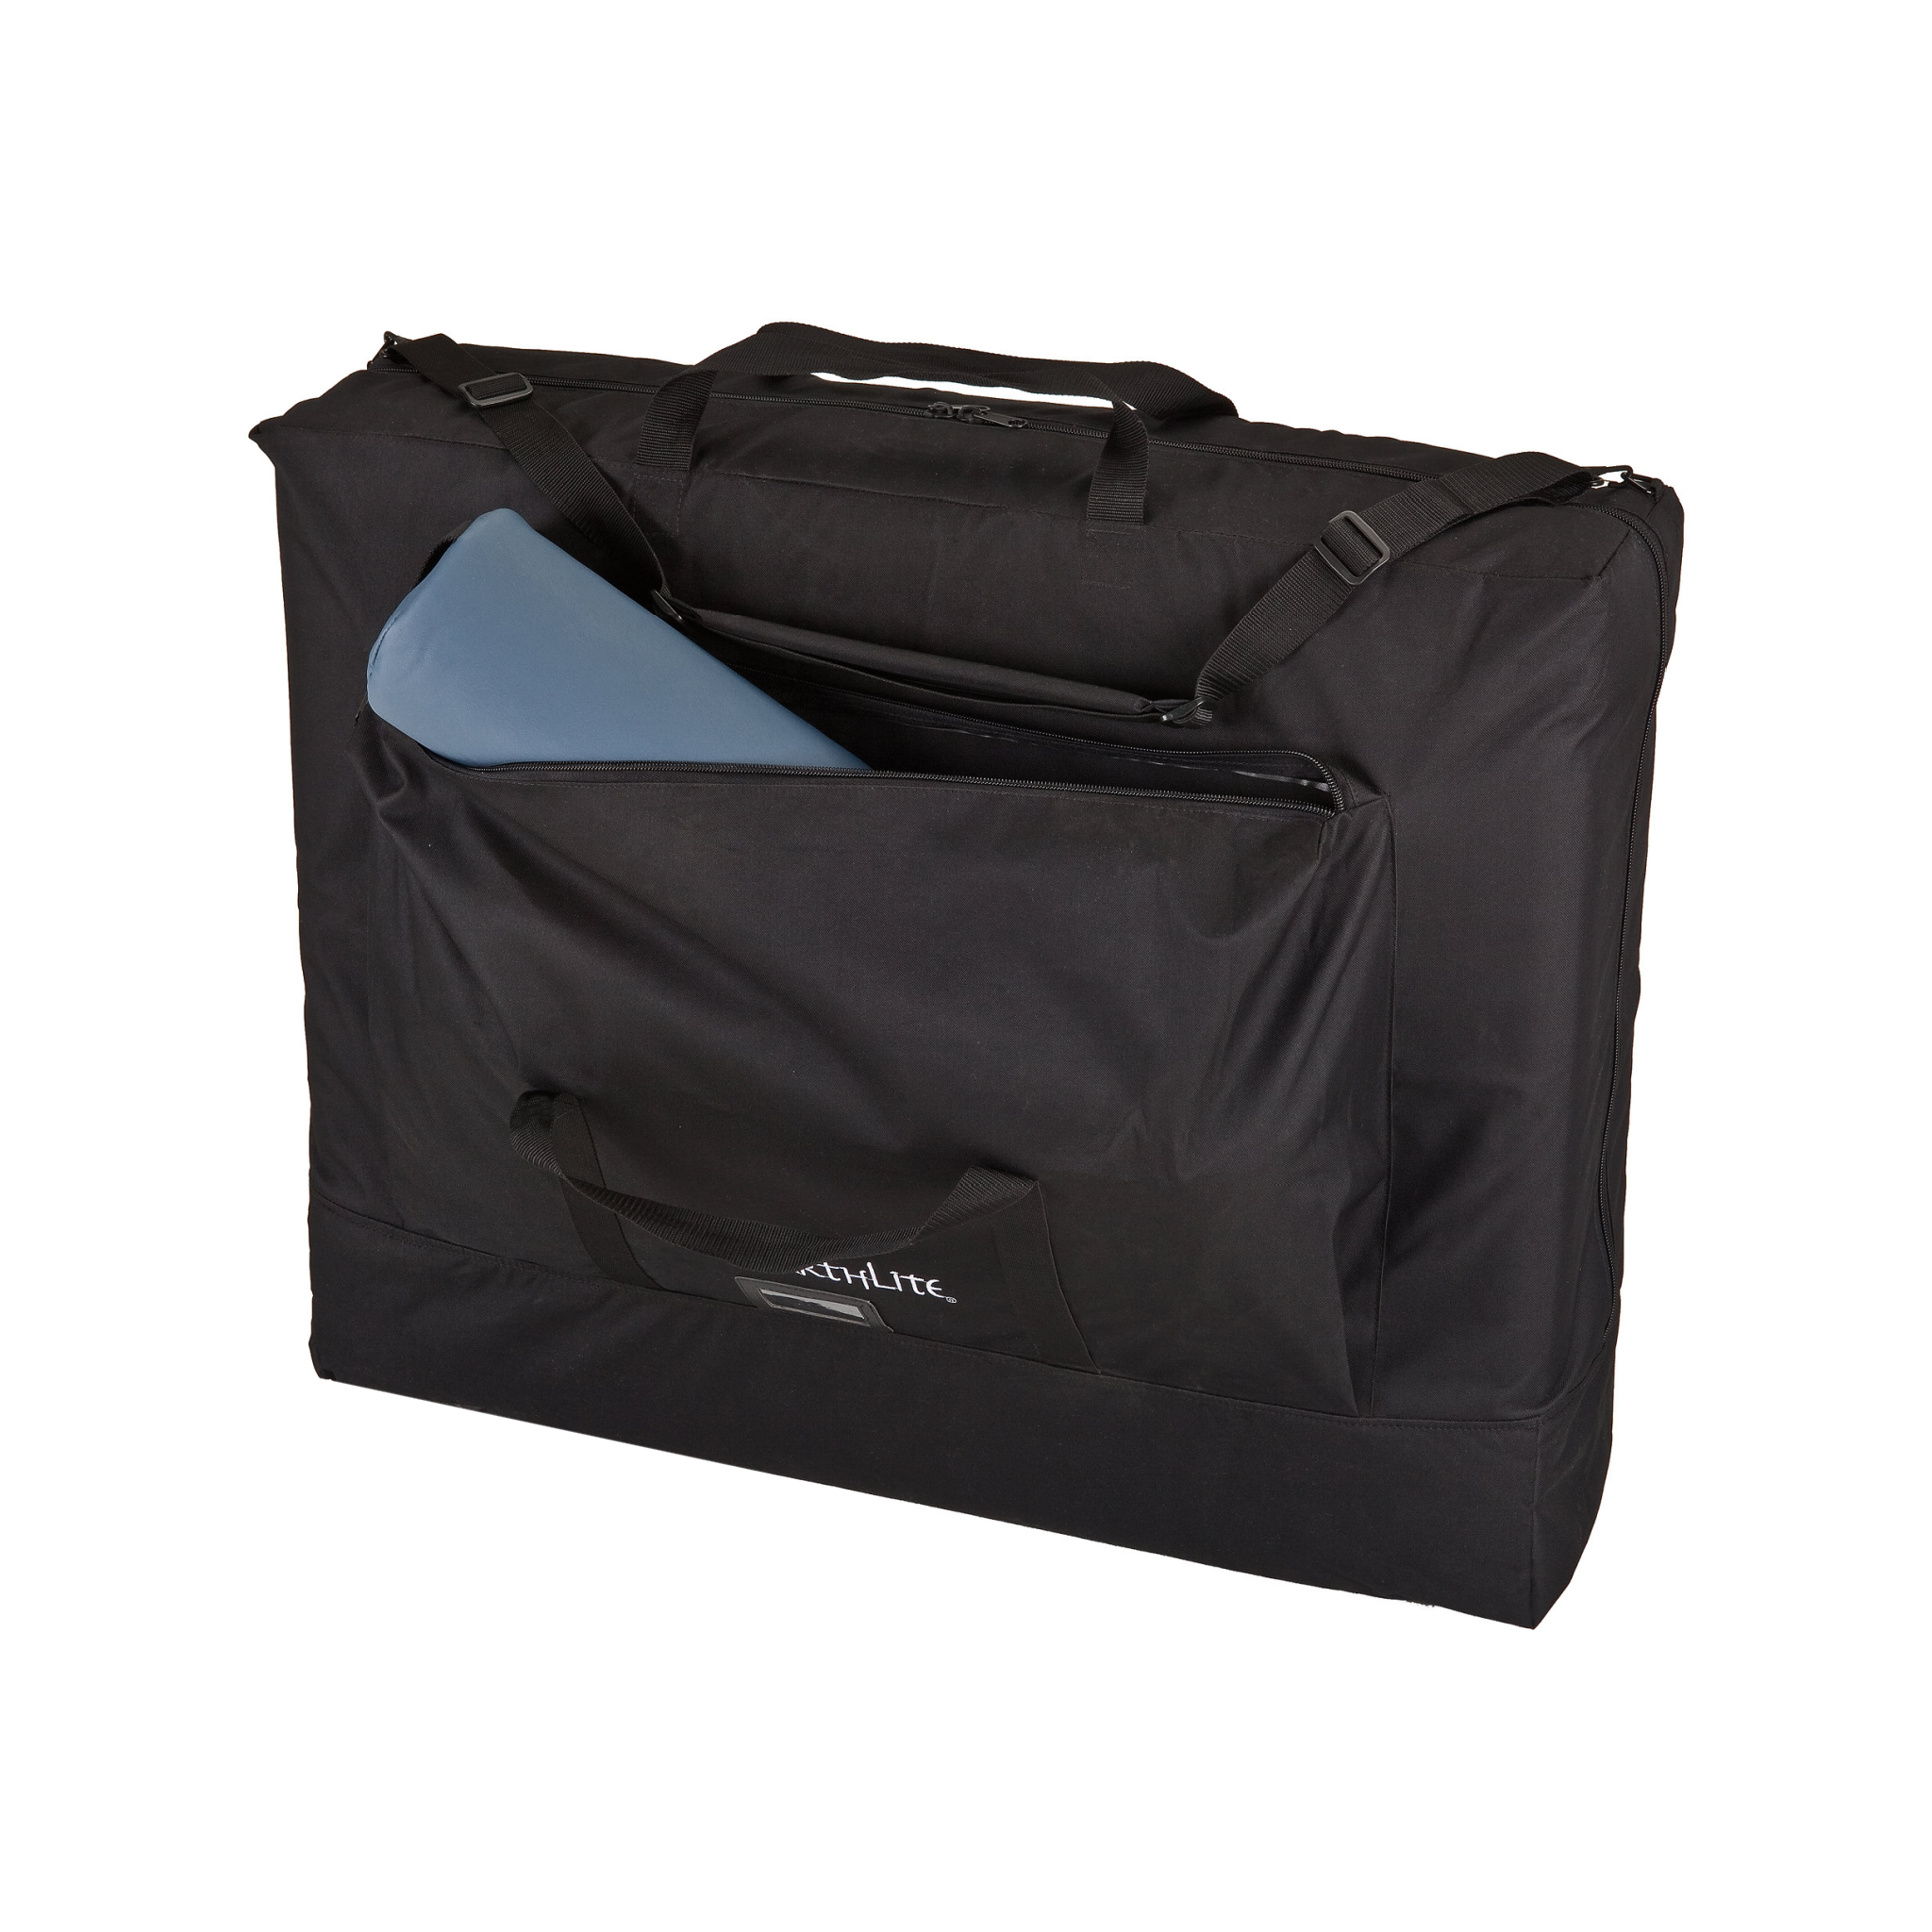 EarthLite Carrying Case for Massage Table